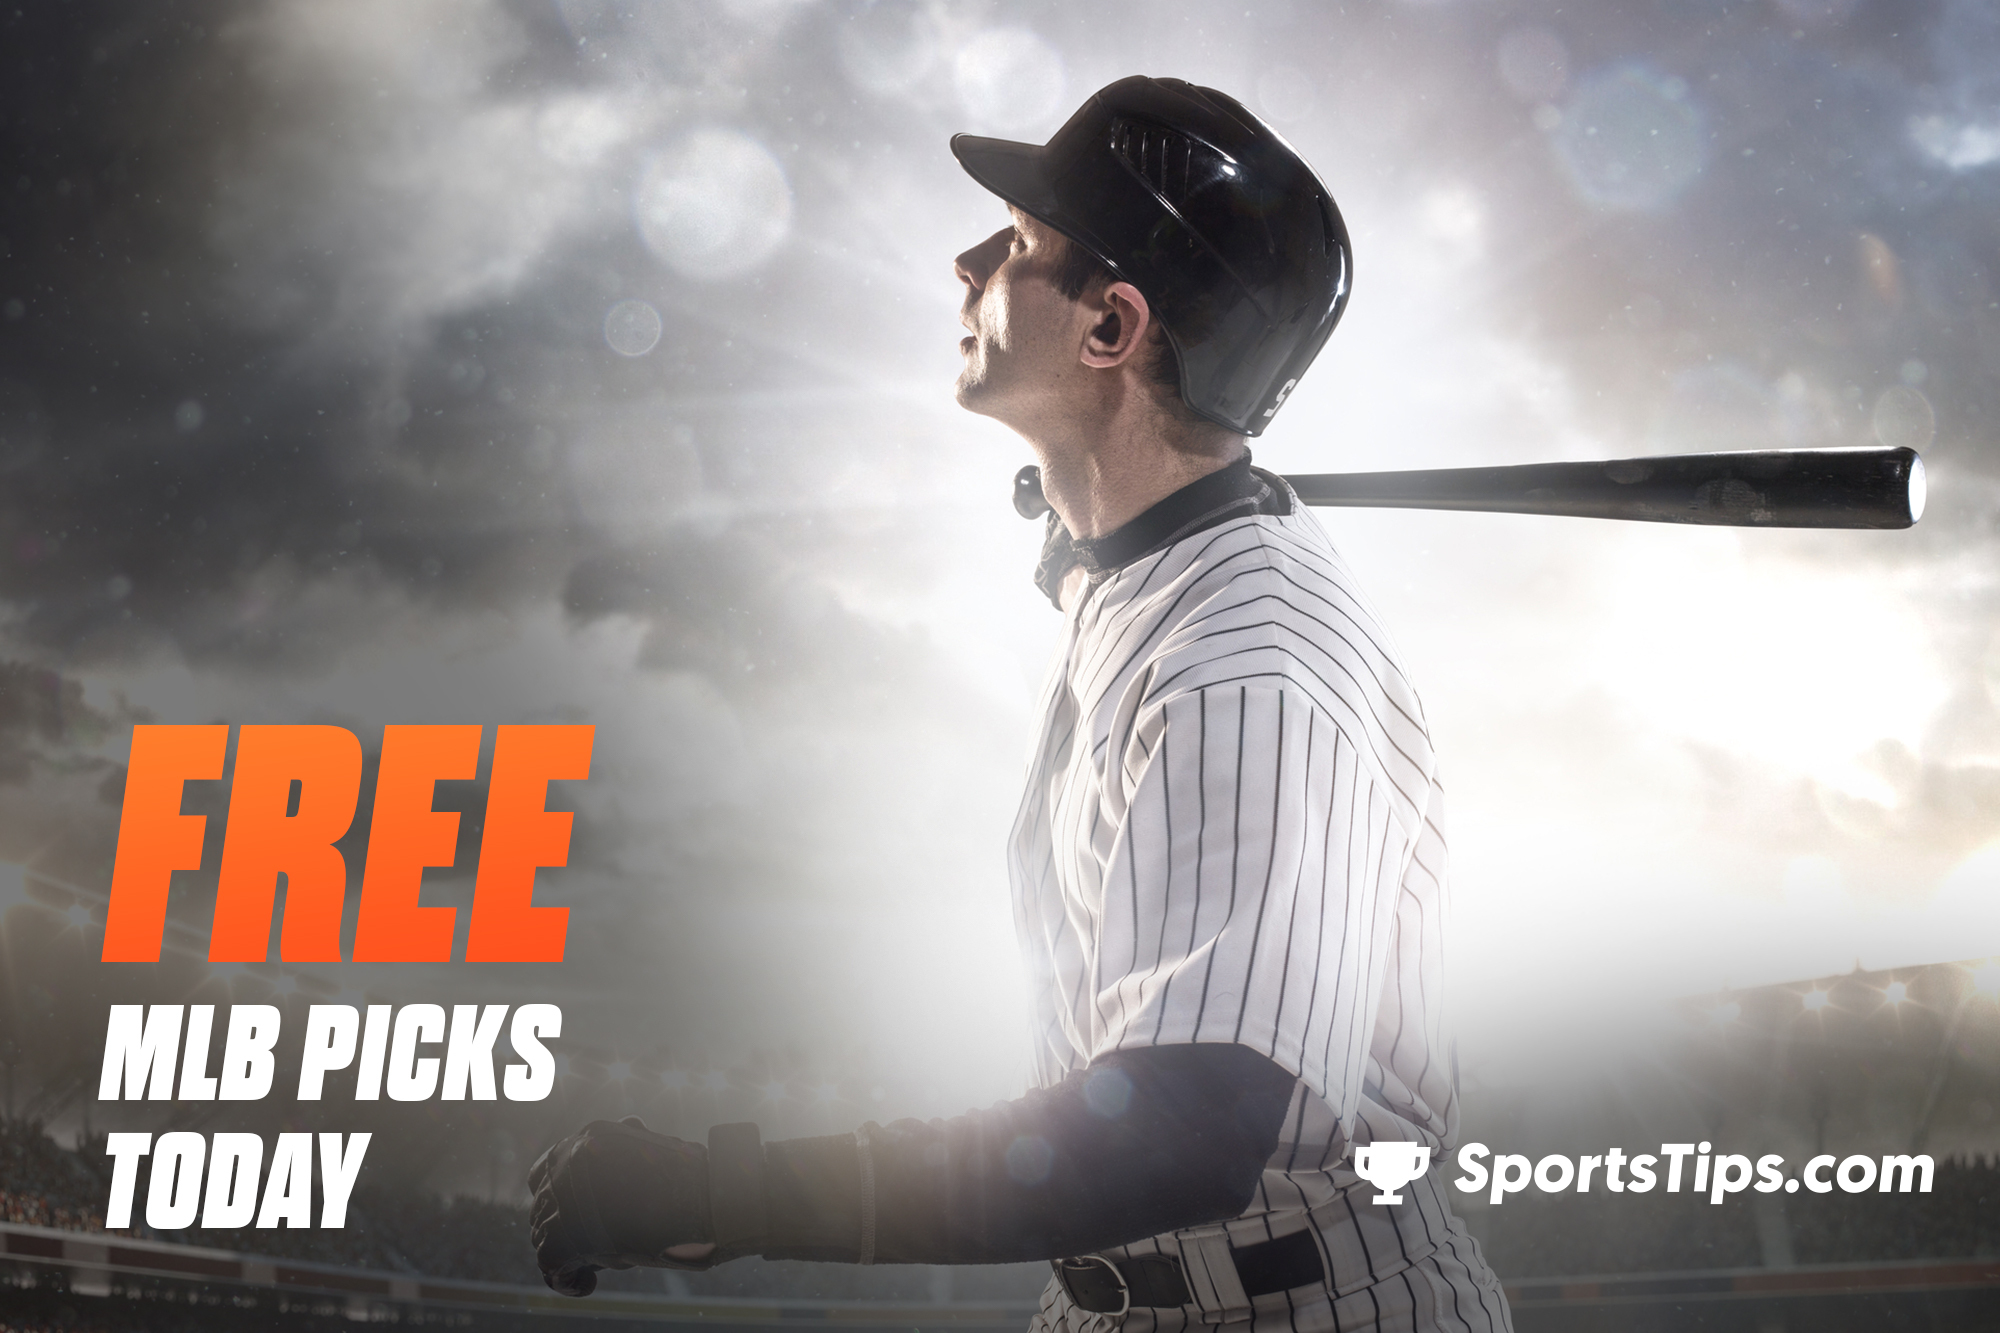 Free MLB Picks Today for Tuesday, April 6th, 2021